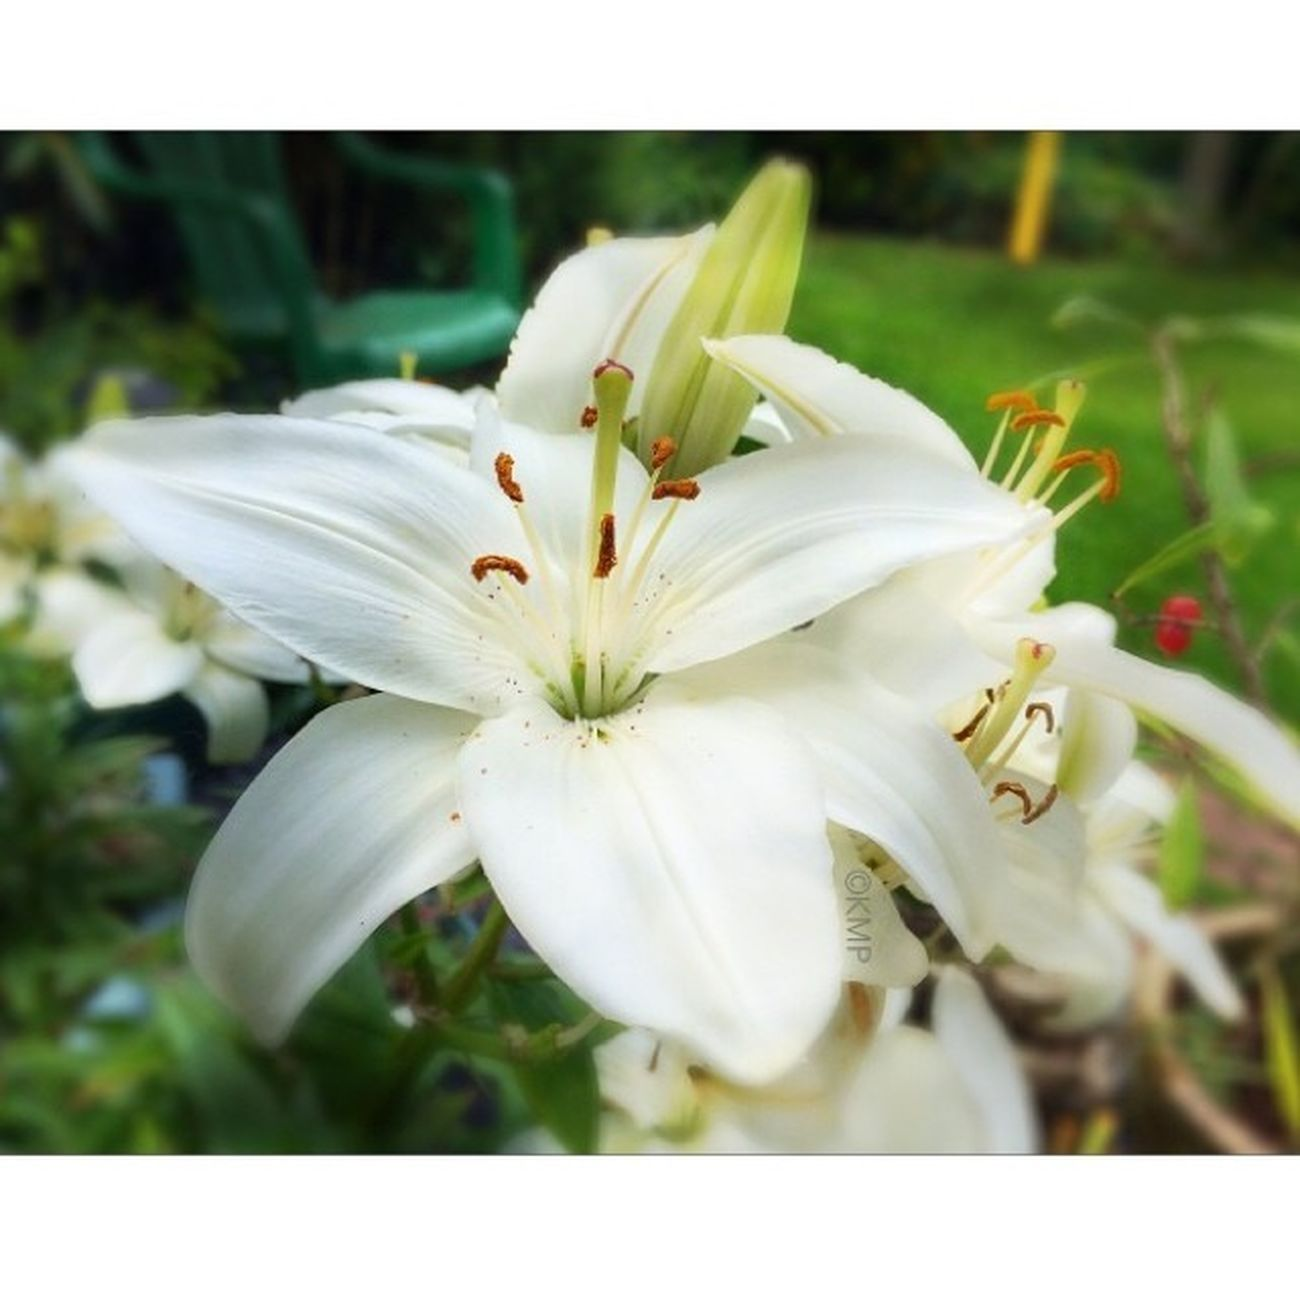 Flower Nature K8marieuk Katemariephotographyuk Iphone5s July14 Iwatermark Squareadypro Garden Lilly White Flowers Phototoaster ECP Eastcoastpixels